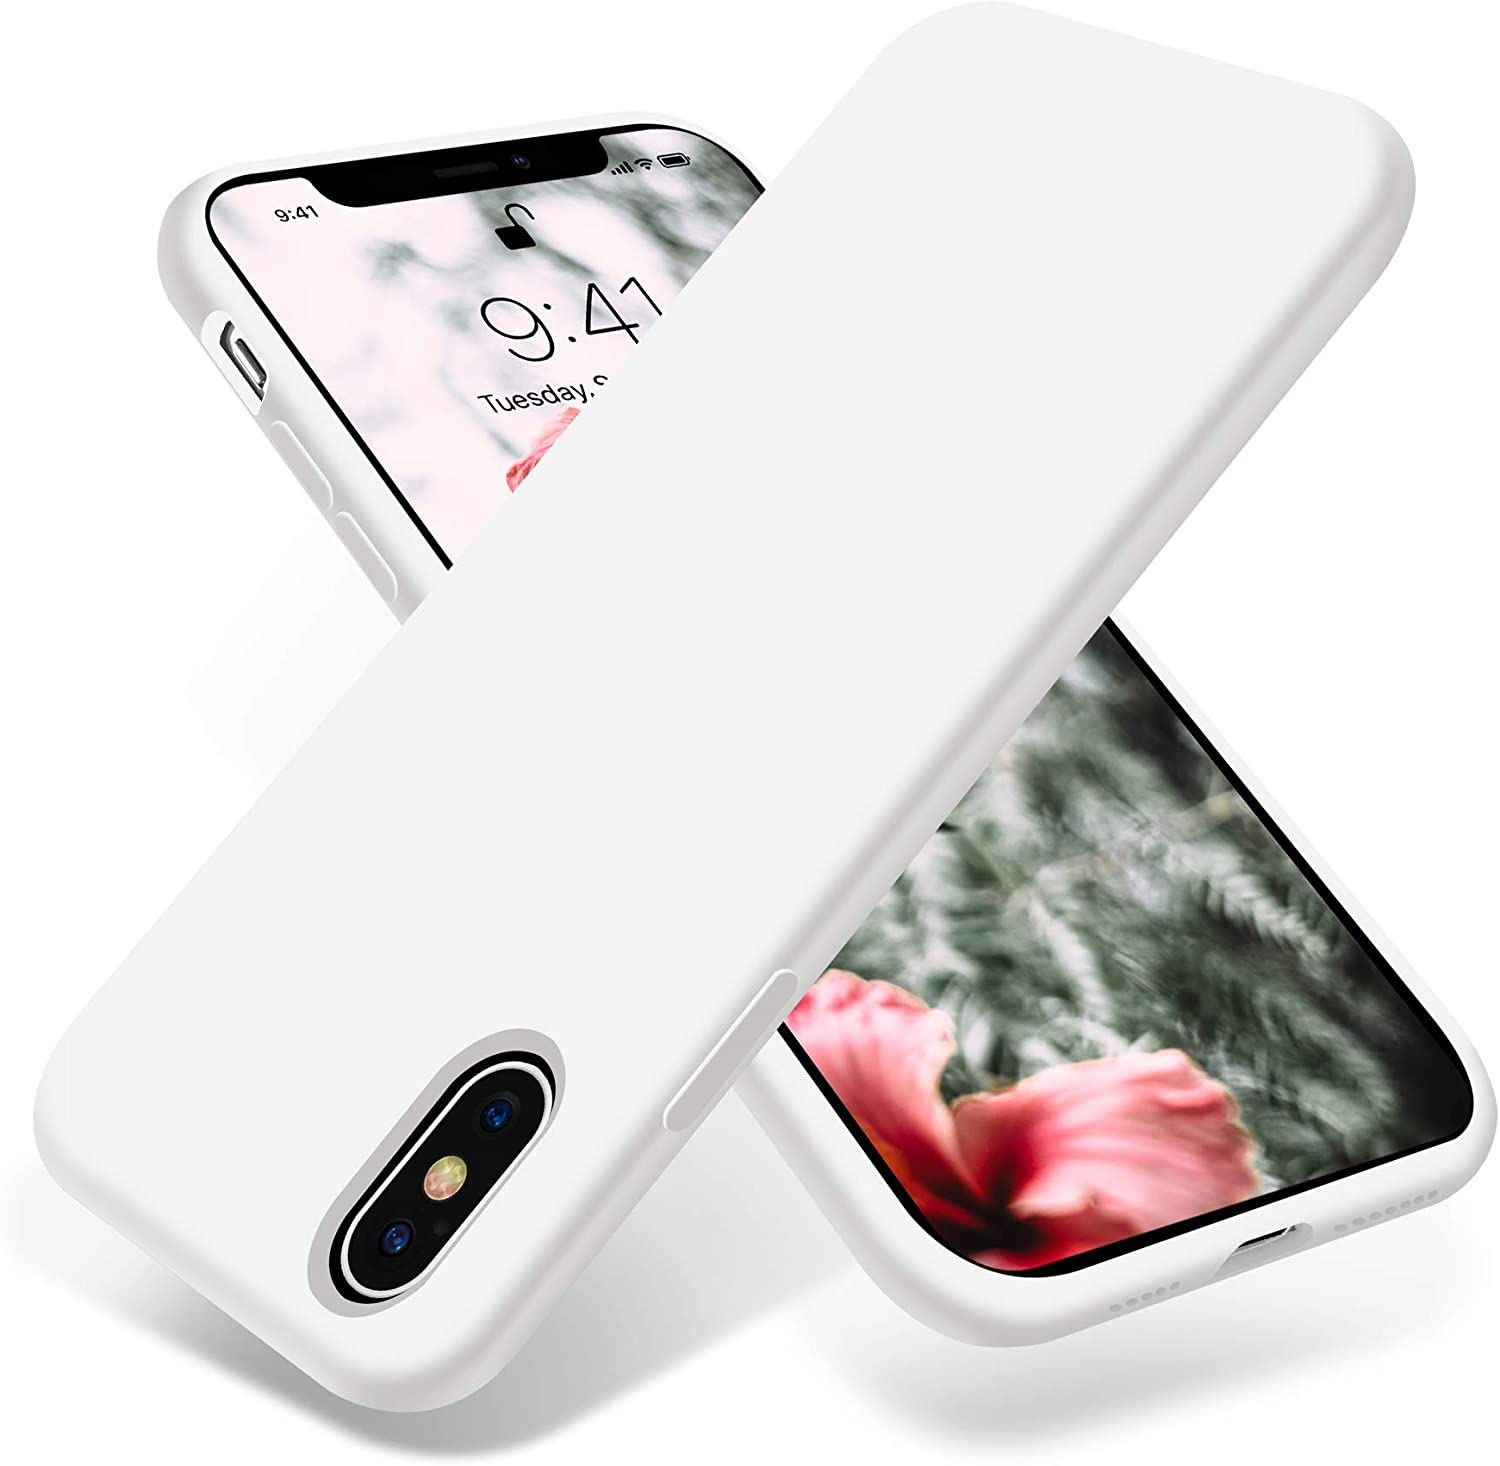 OTOFLY iPhone Xs Max Case,Ultra Slim Fit iPhone Case Liquid Silicone Gel Cover with Full Body Protection Anti-Scratch Shockproof Case Compatible with iPhone Xs Max, [Upgraded Version] (White)